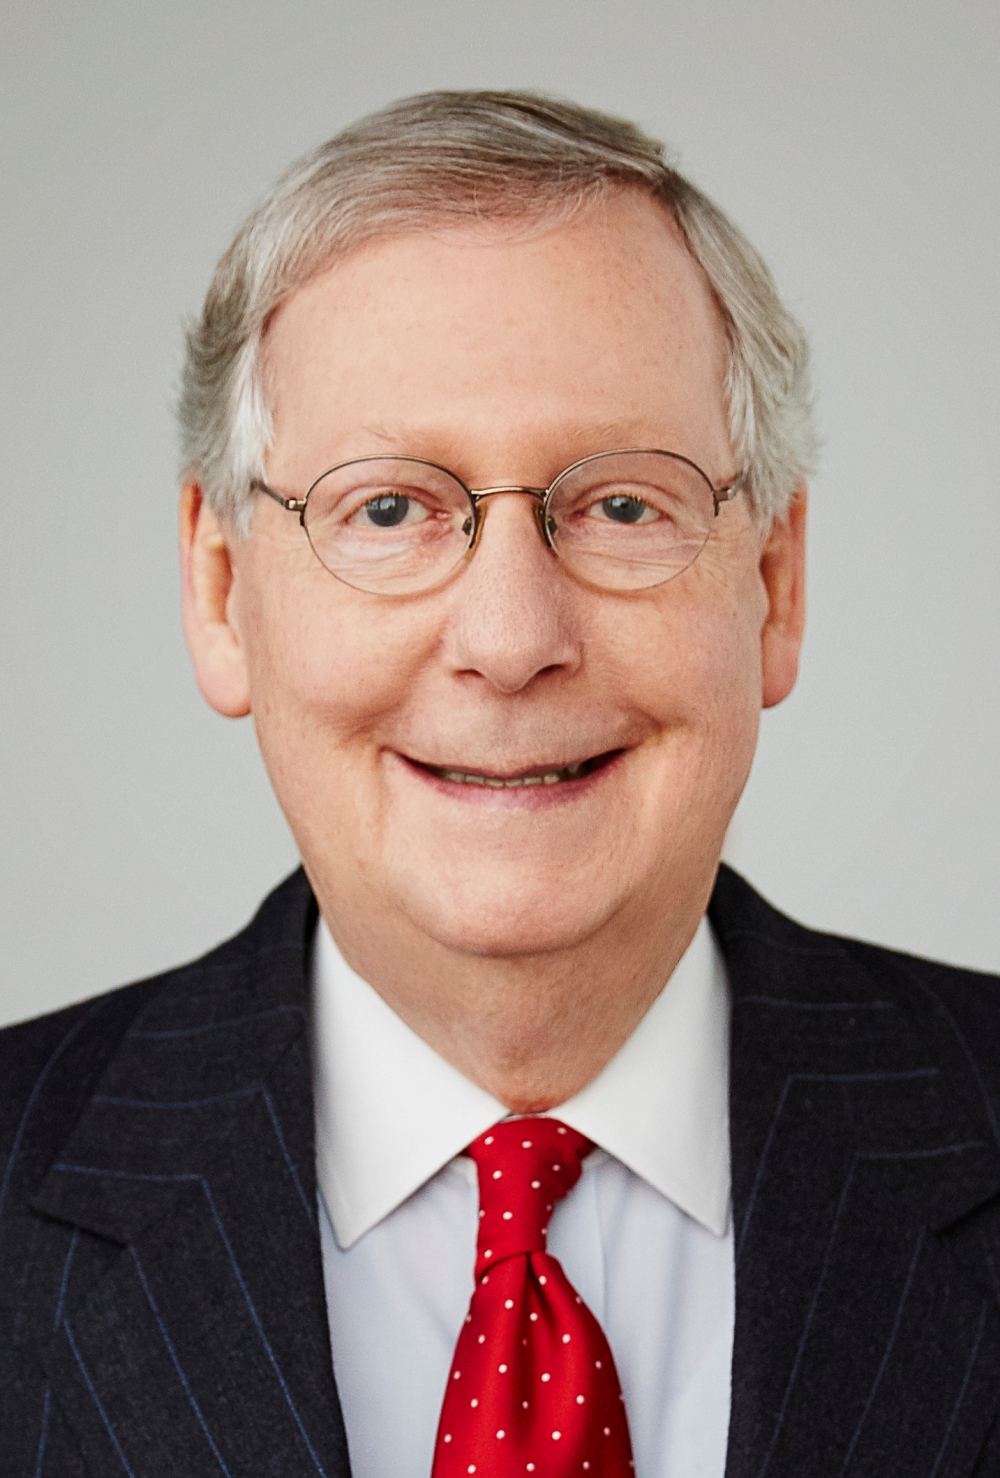 Mitch_McConnell_2016_official_photo_(cropped)